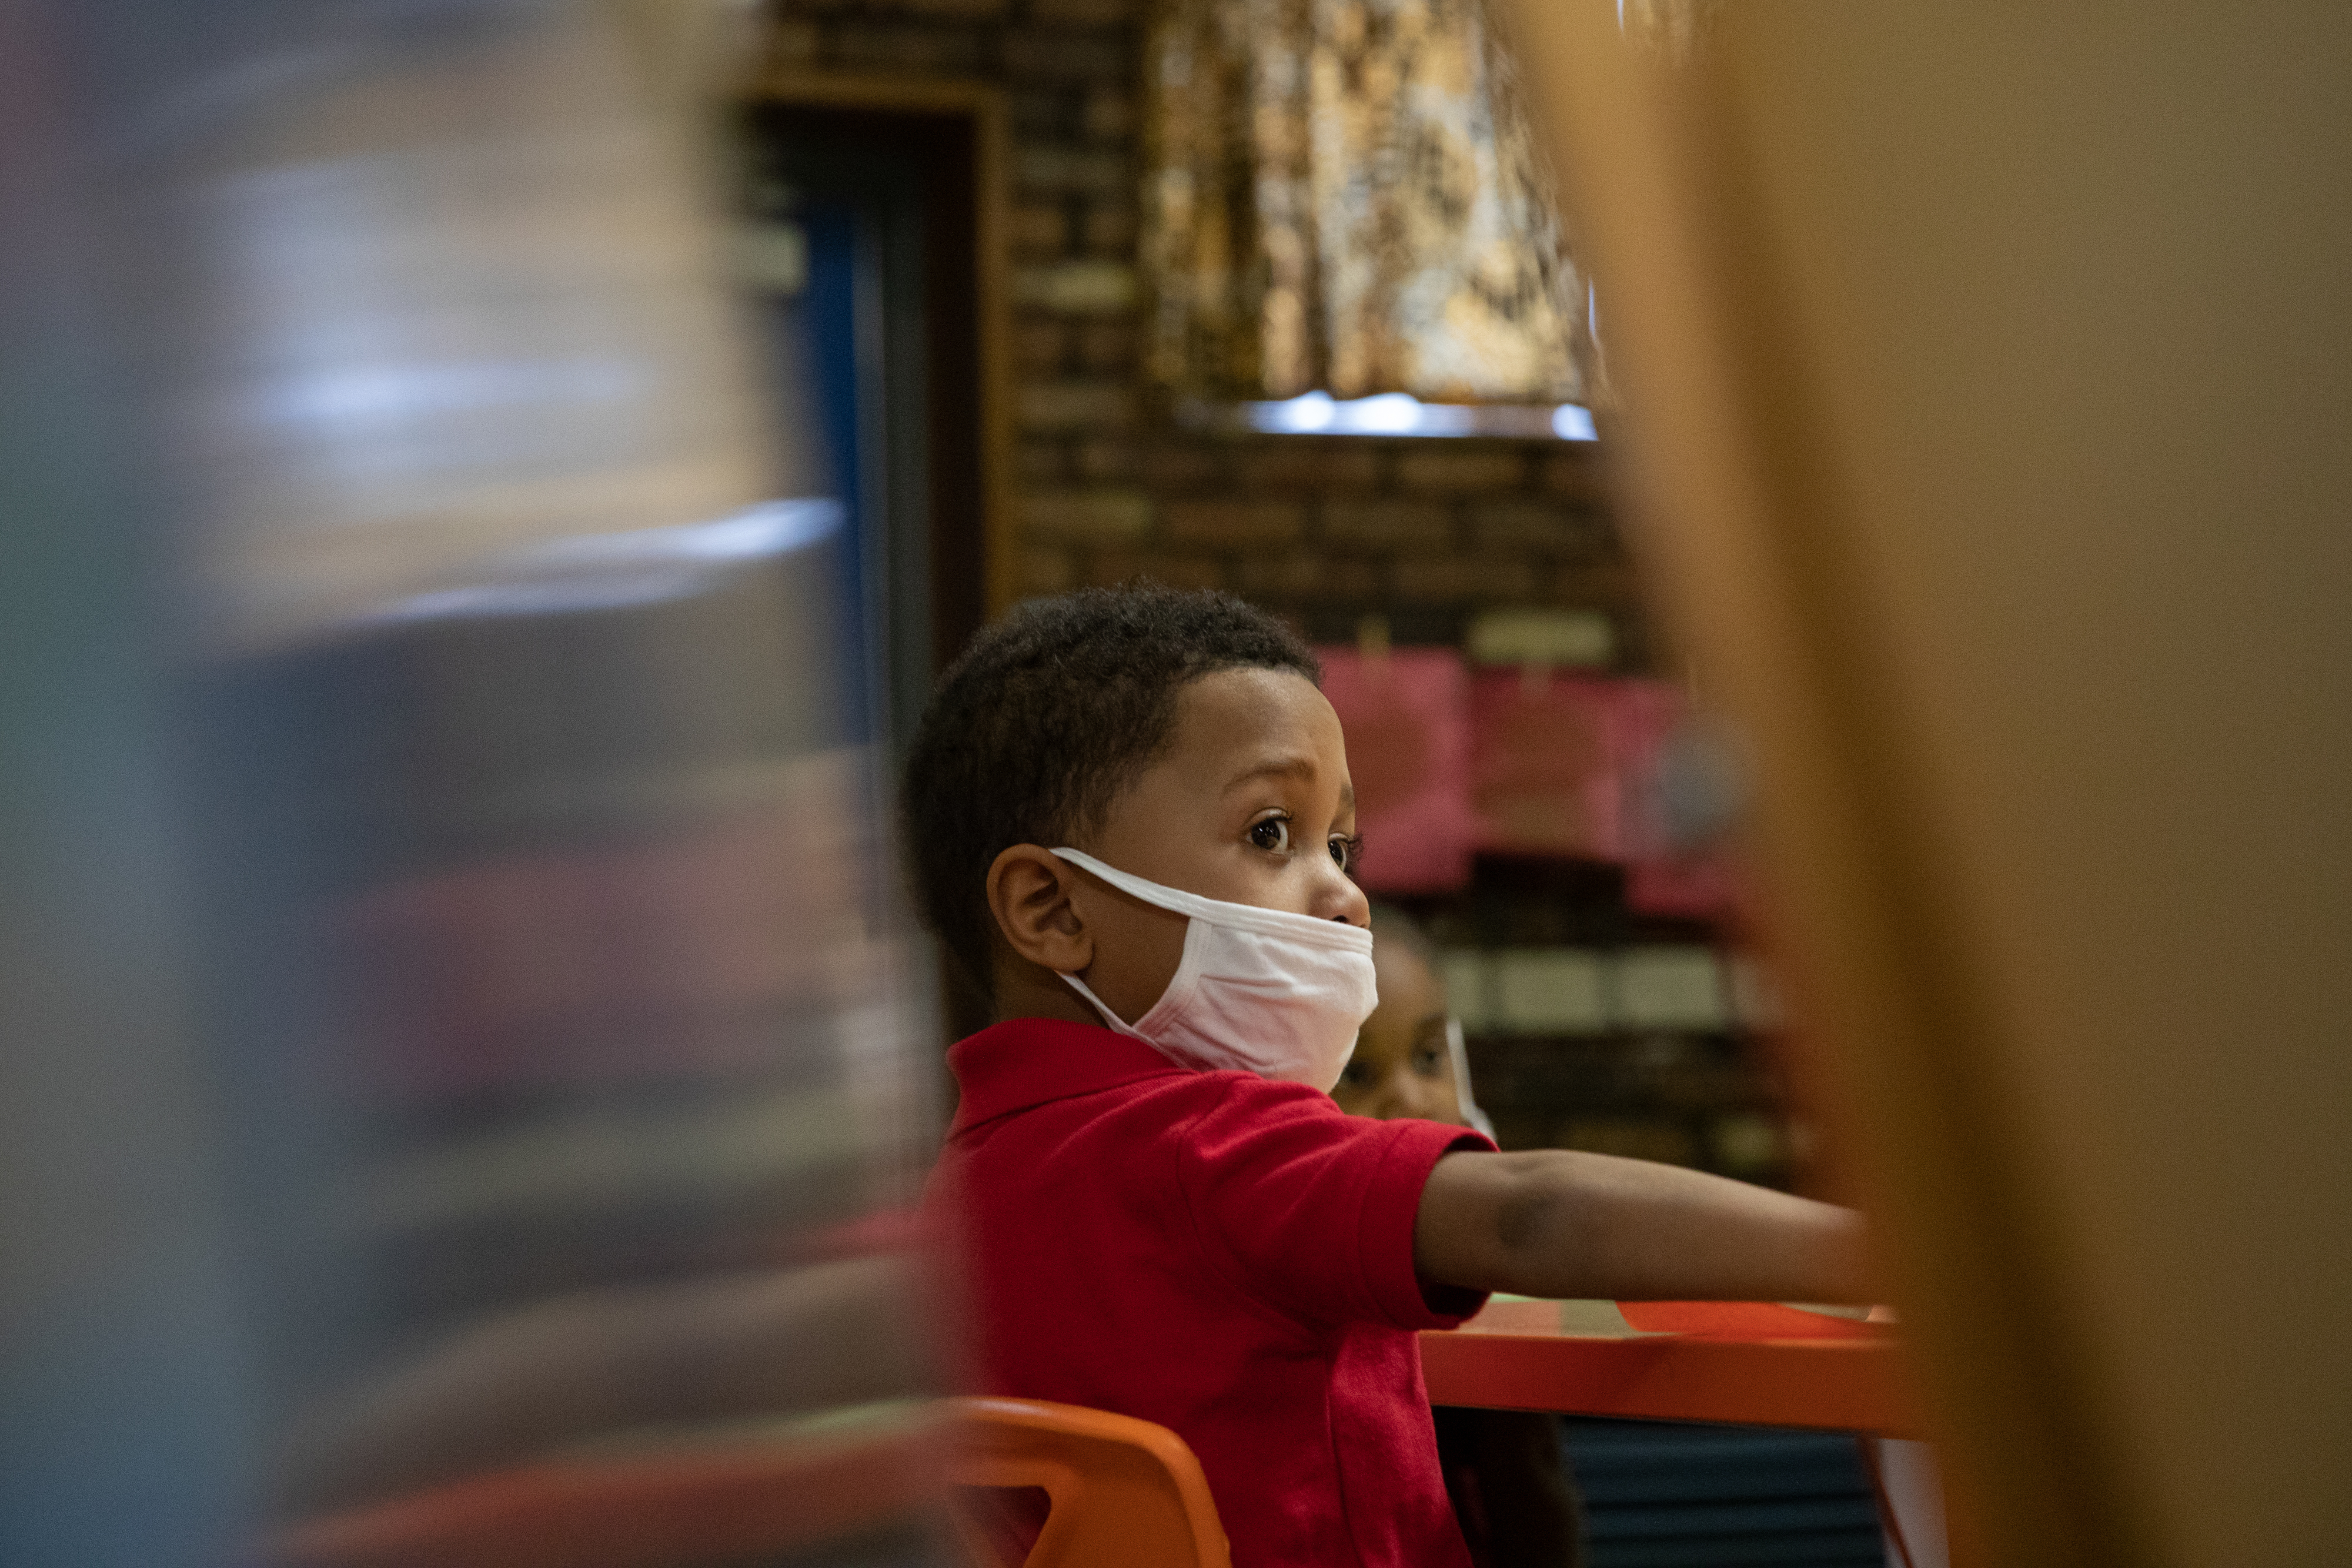 A preschooler listens to instructions for a painting activity during a preschool class at Little Scholars child care center.